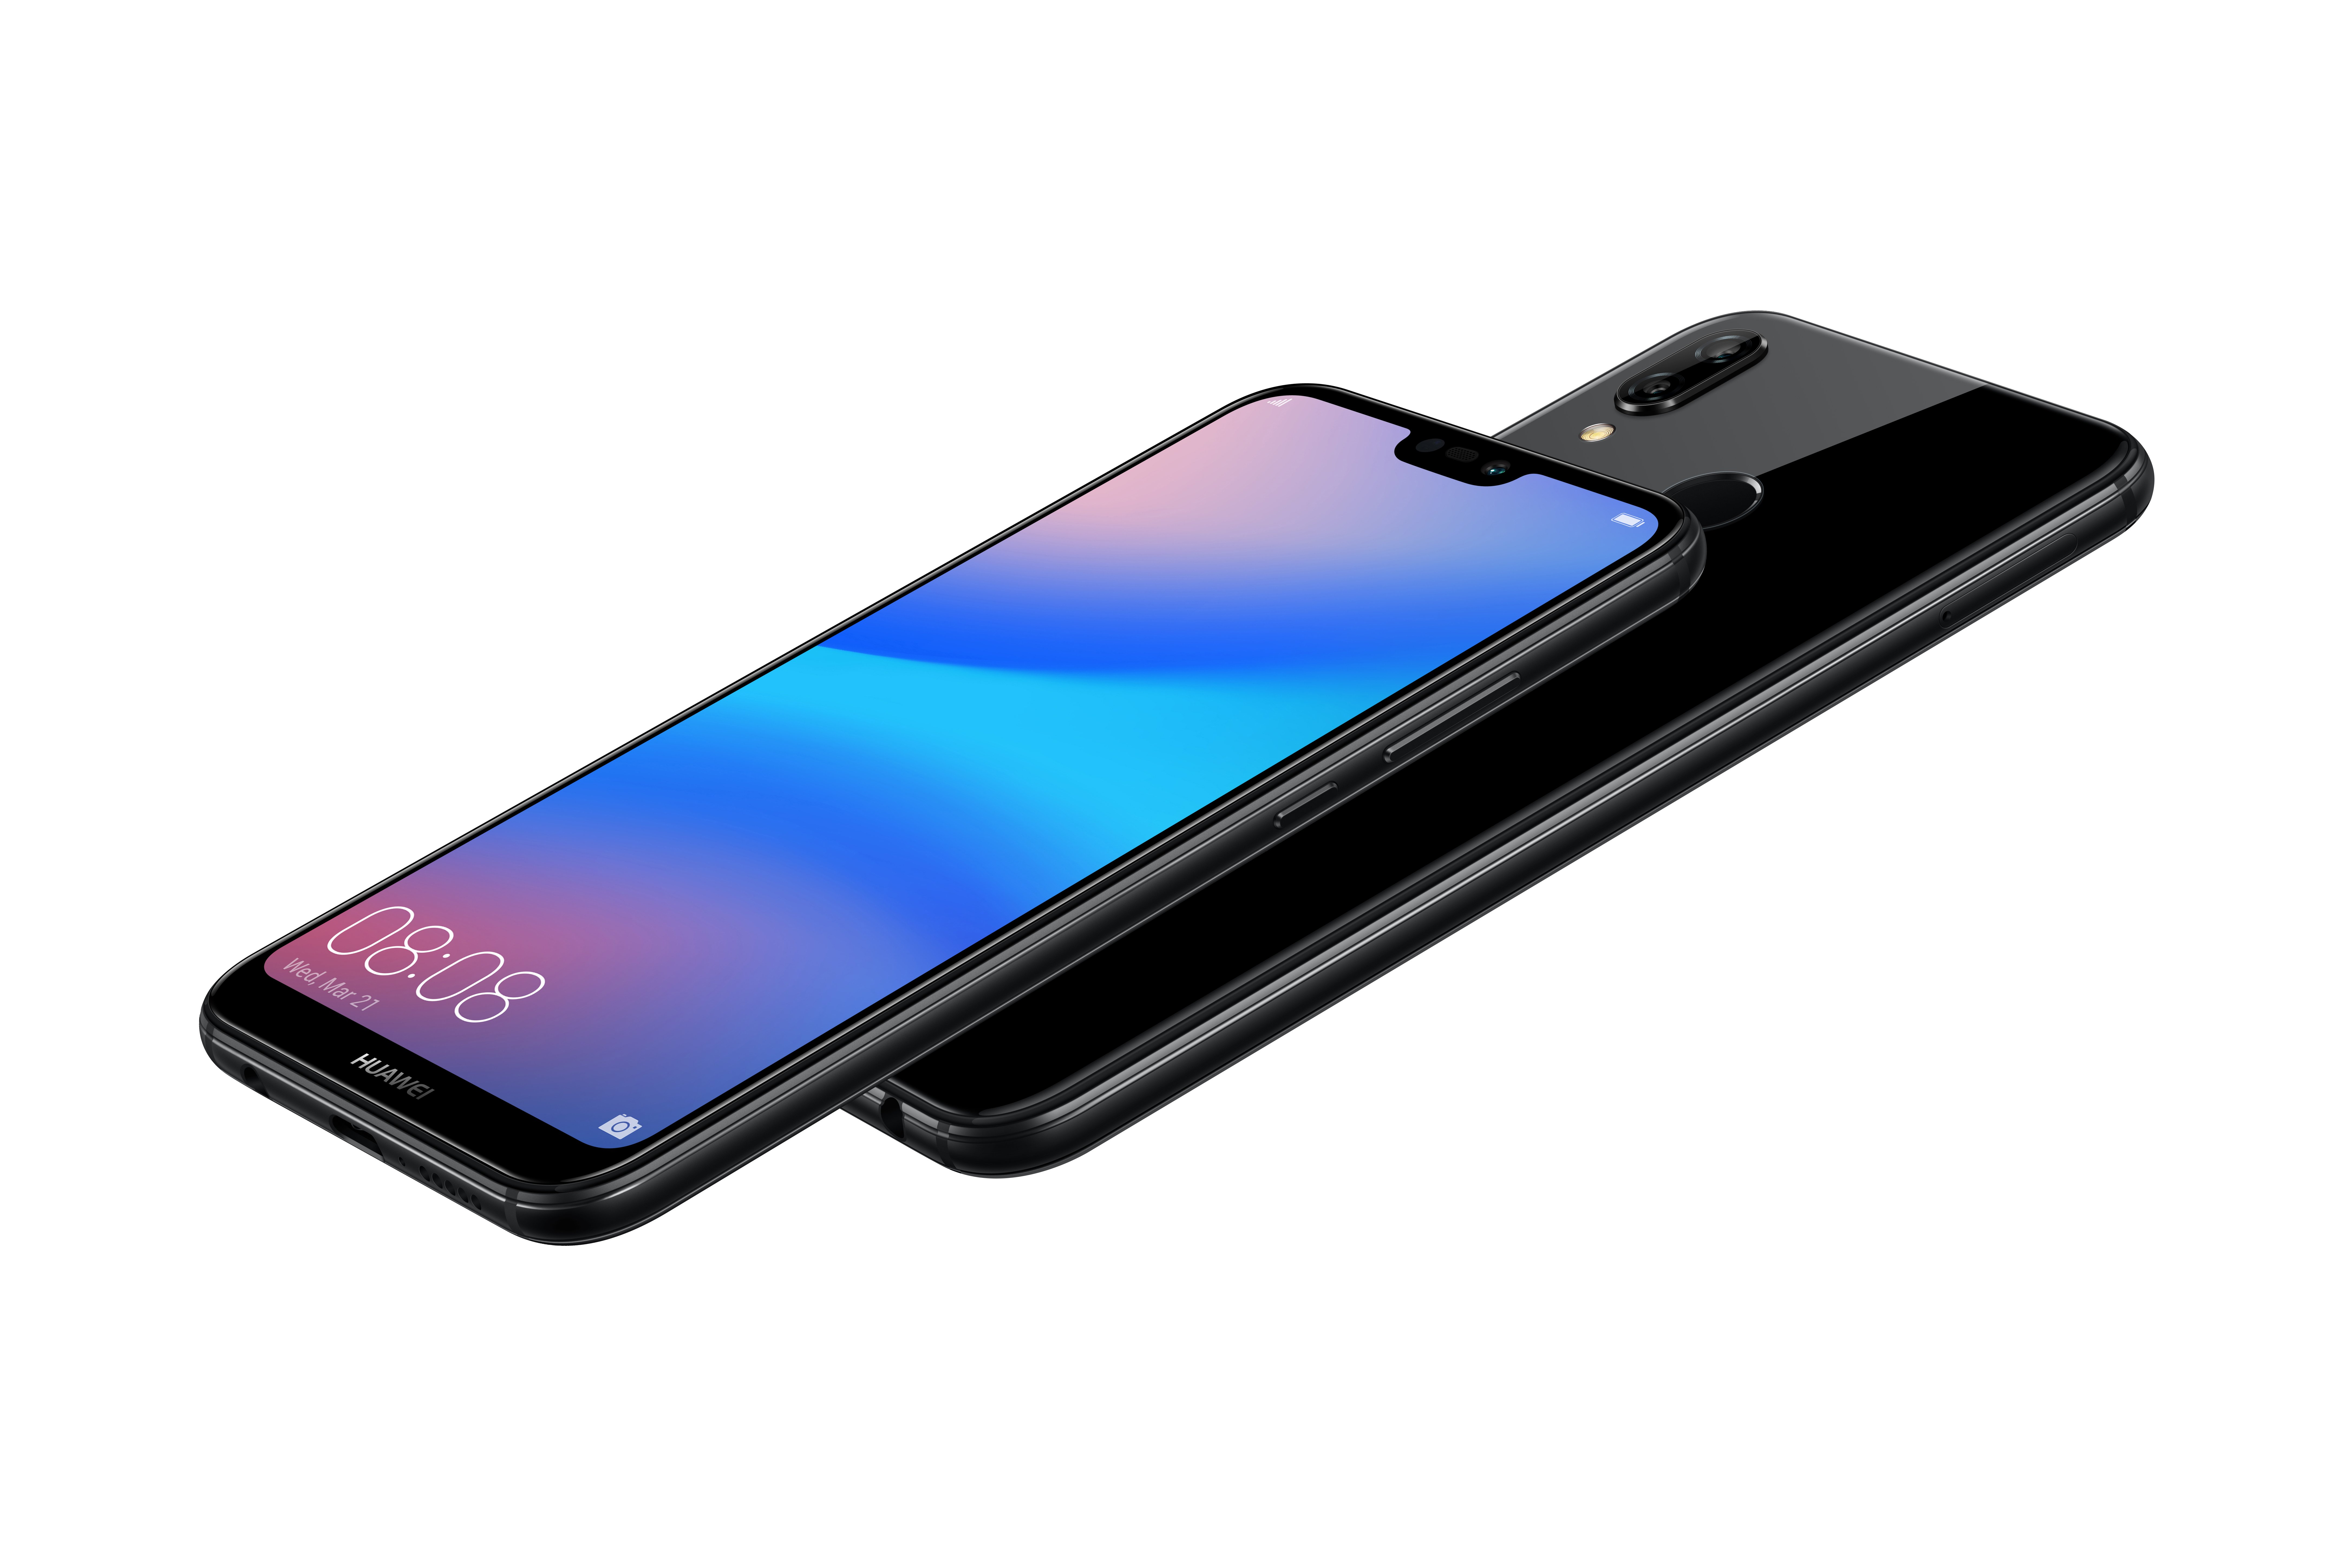 Huawei Nova 3e: Four Things To Expect From The New Midranger